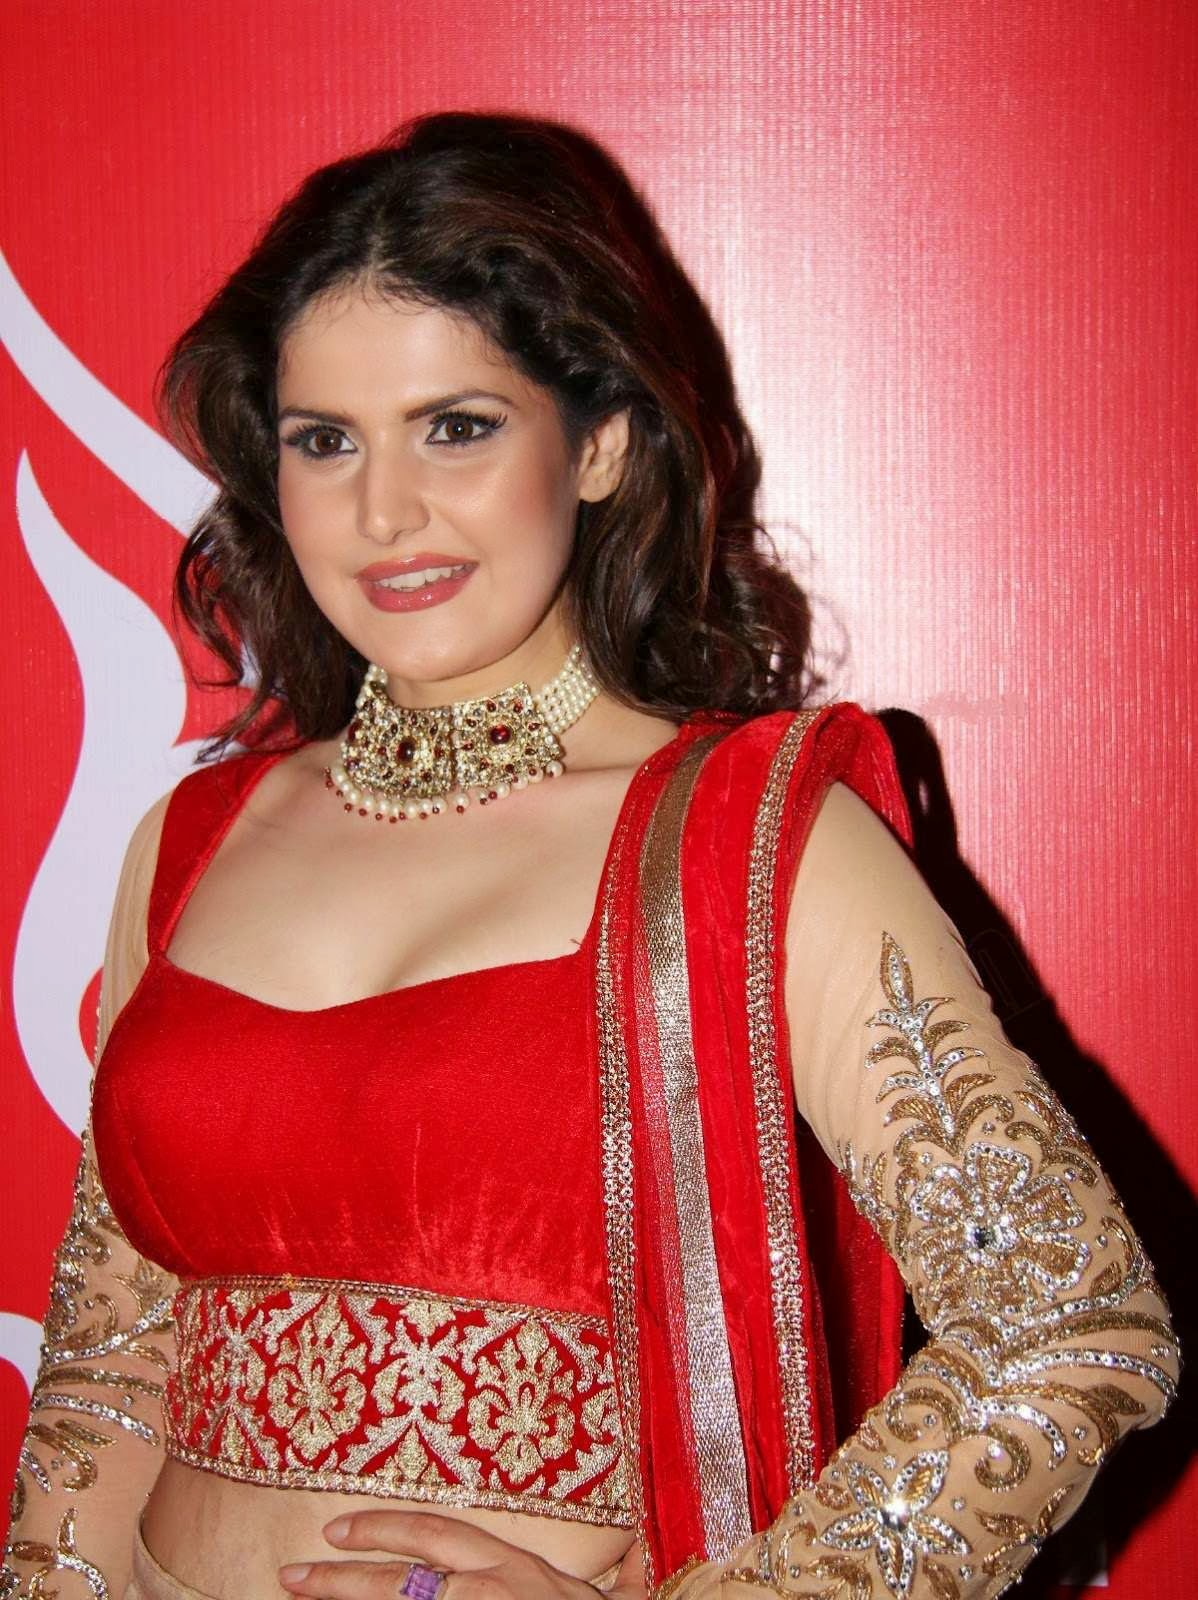 Nude Images Of Zareen Khan